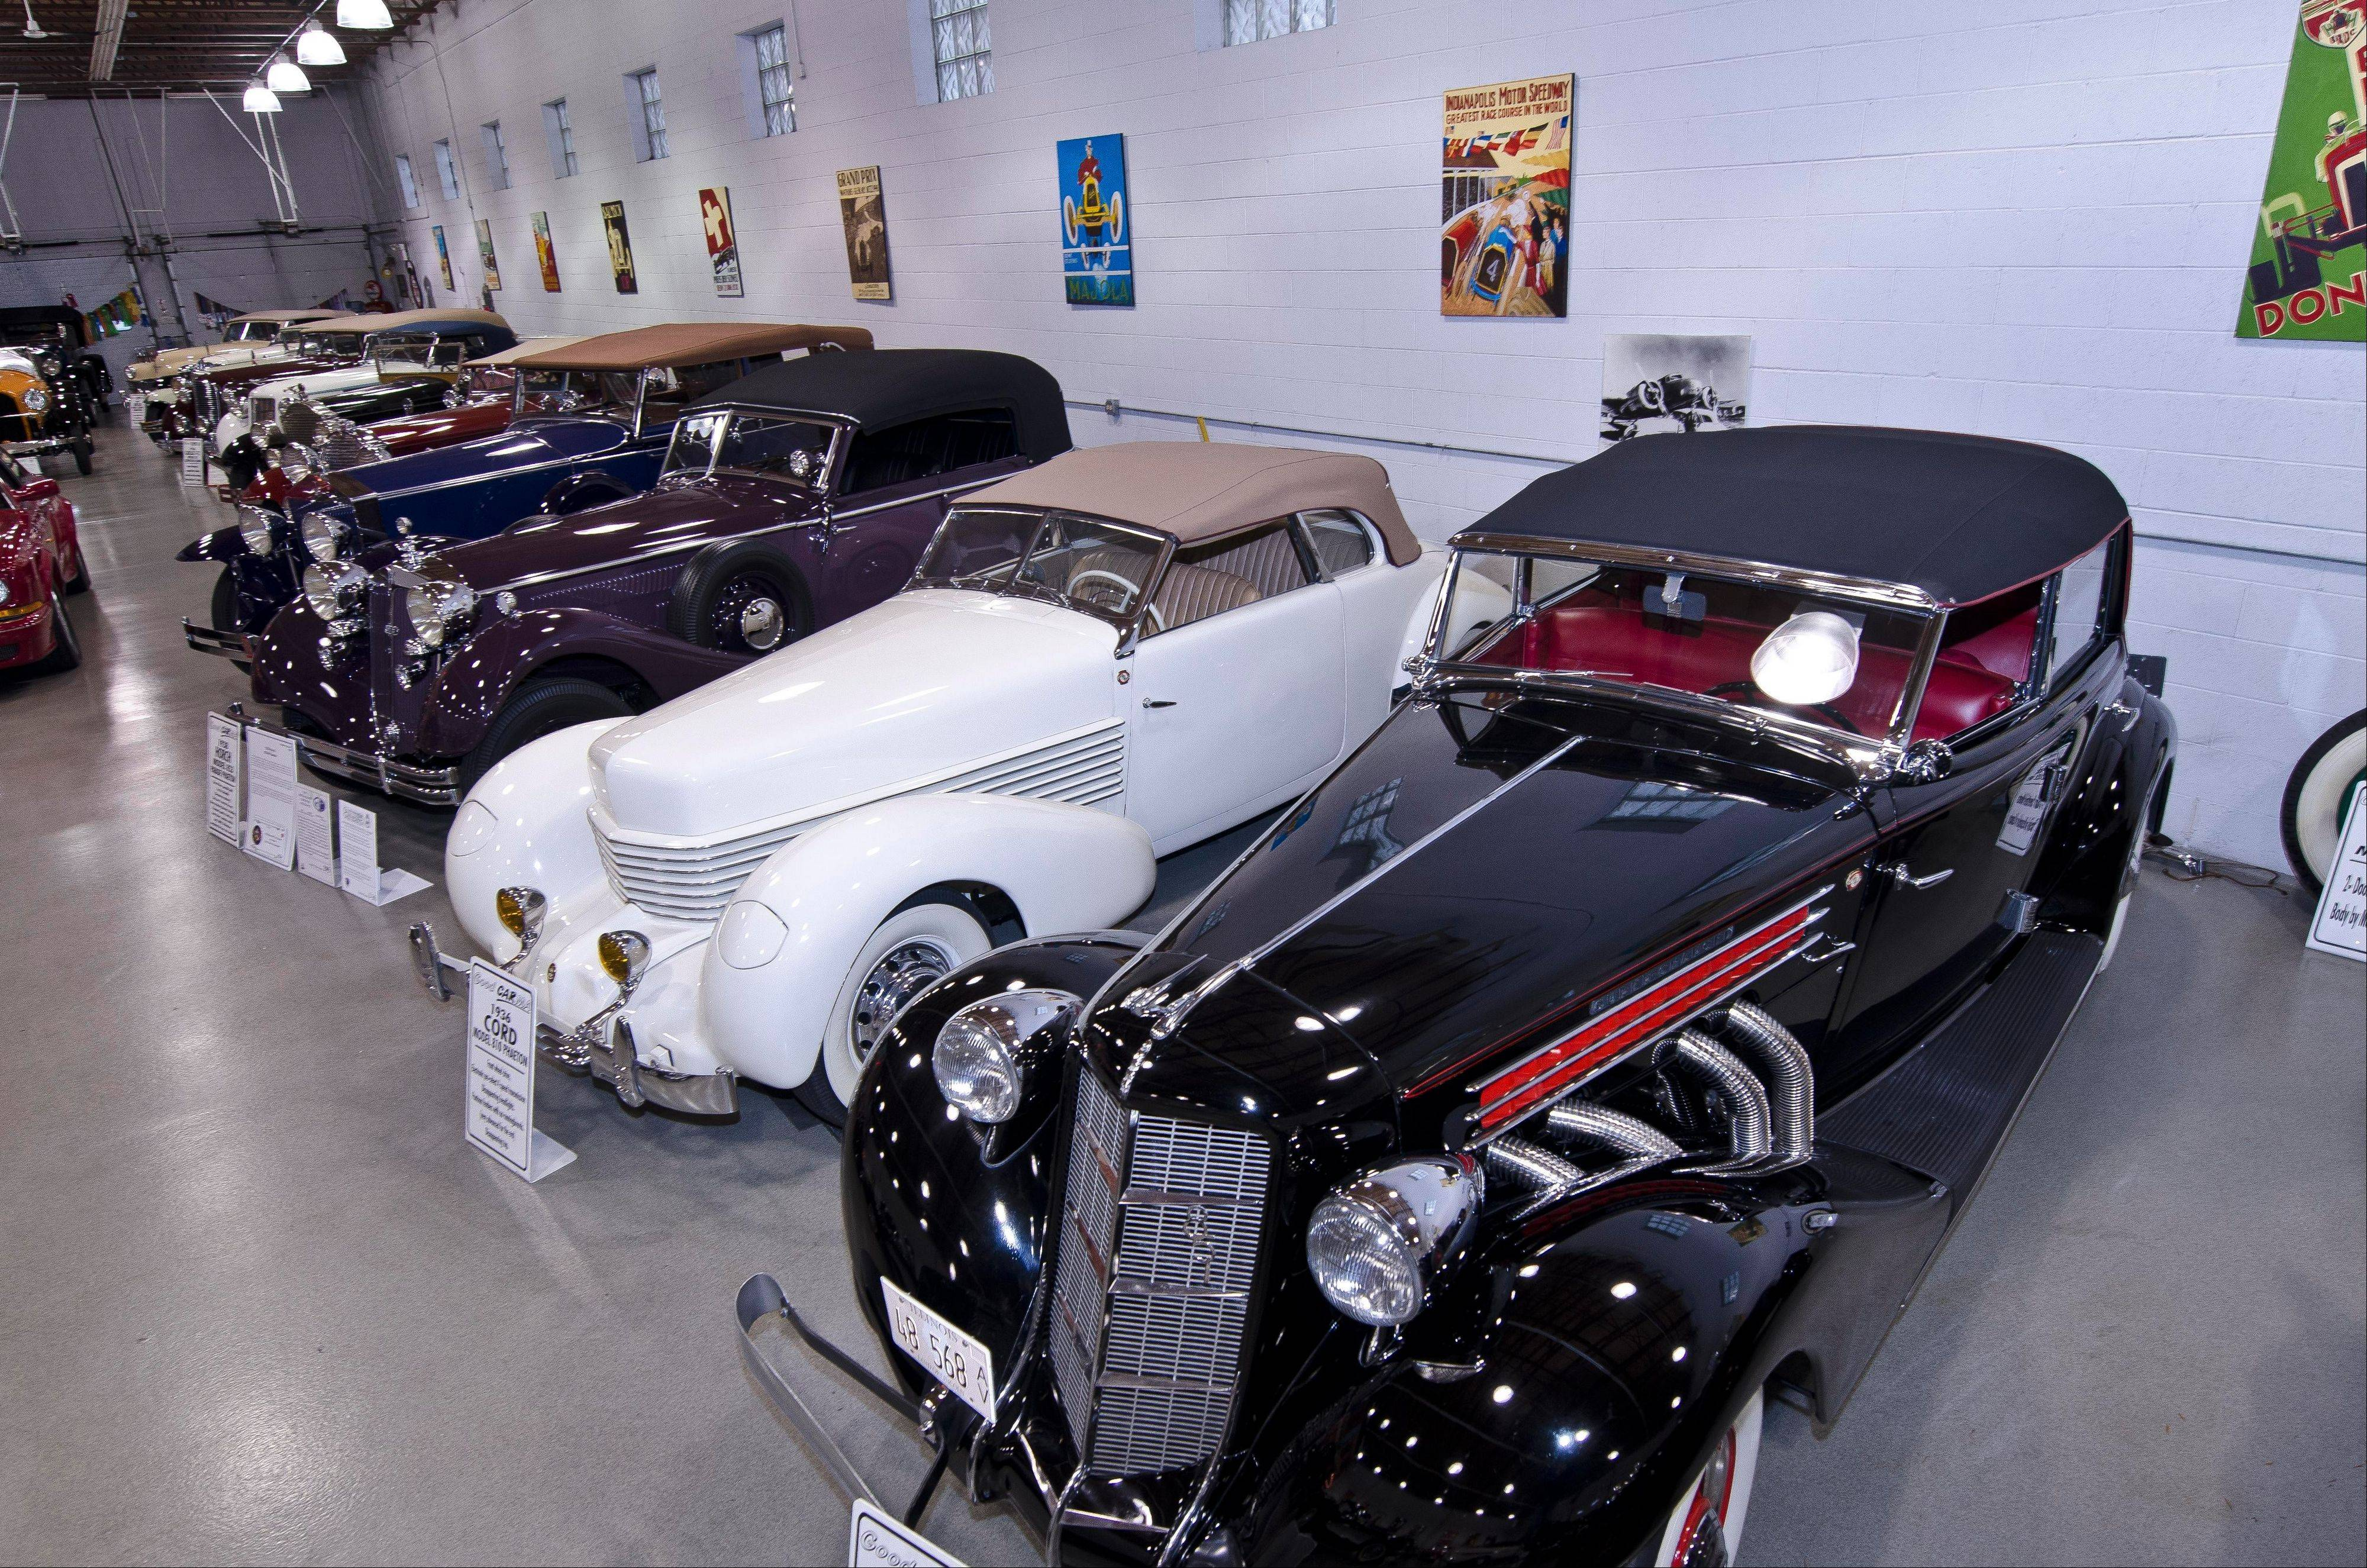 Ed Schoenthaler is proud of his vast car collection.